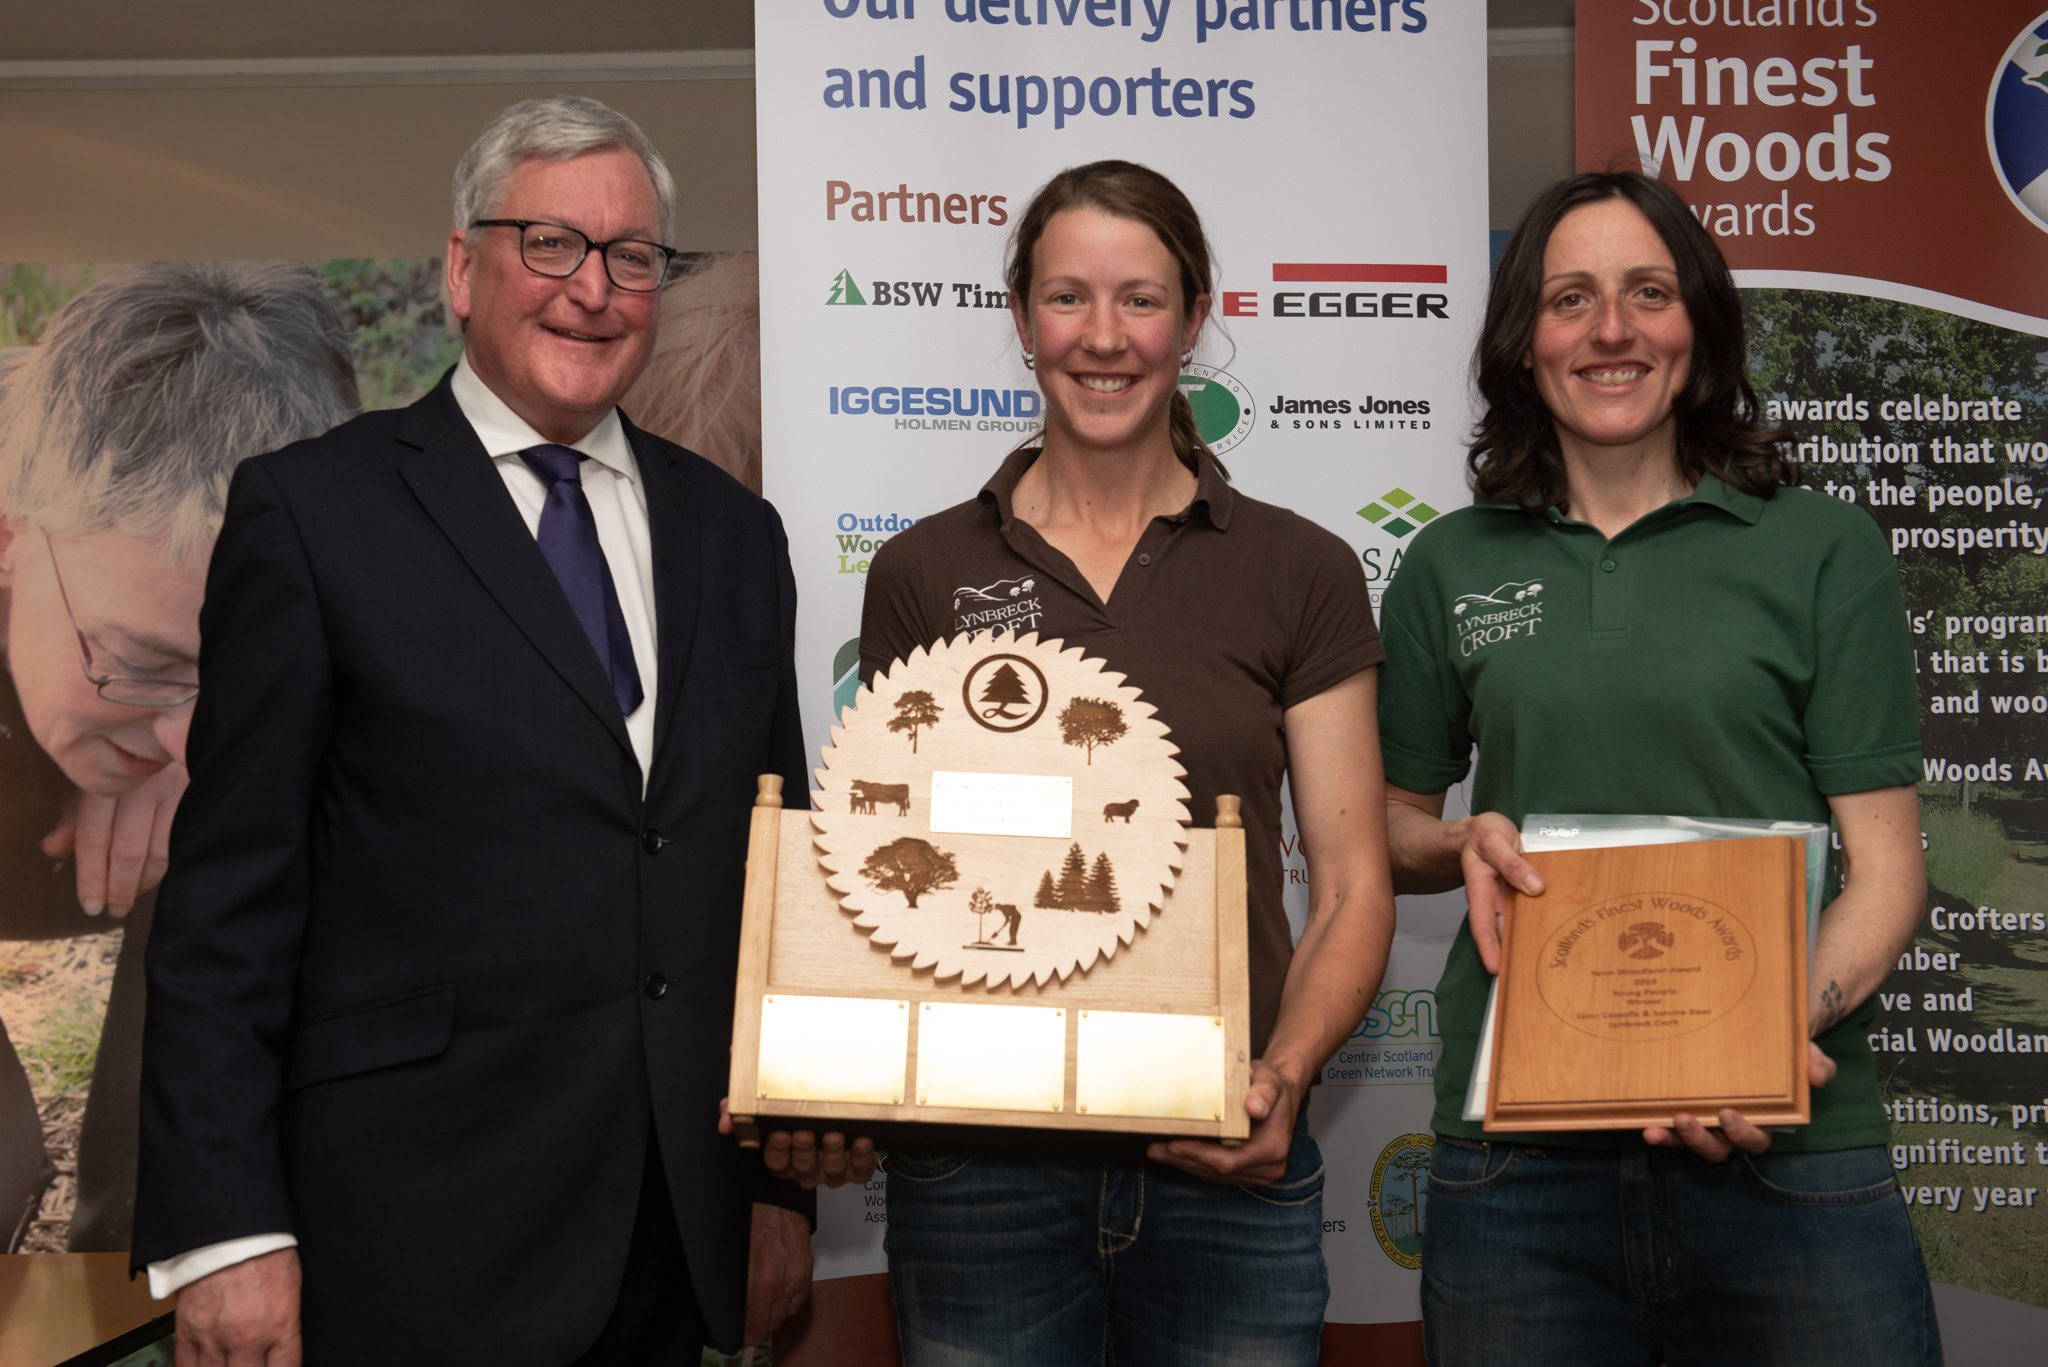 Woodland Carbon Code is win-win-win for award winning crofters